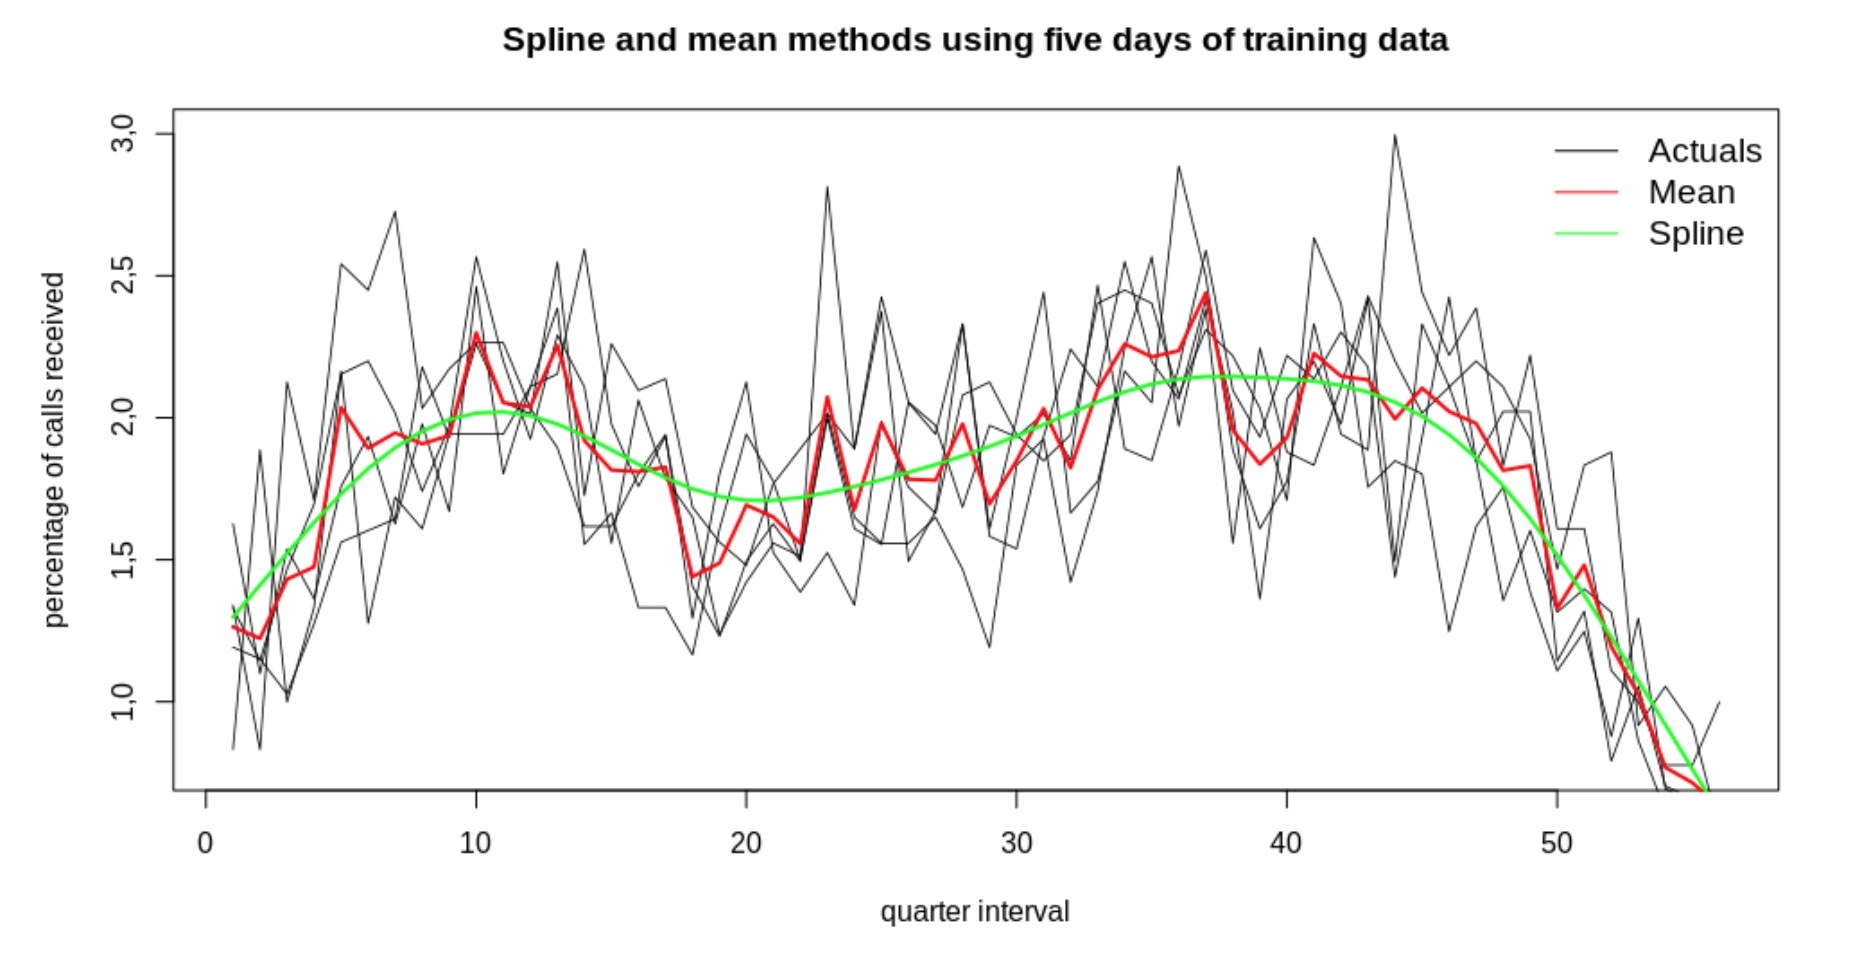 Spline and mean methods using five days of training data